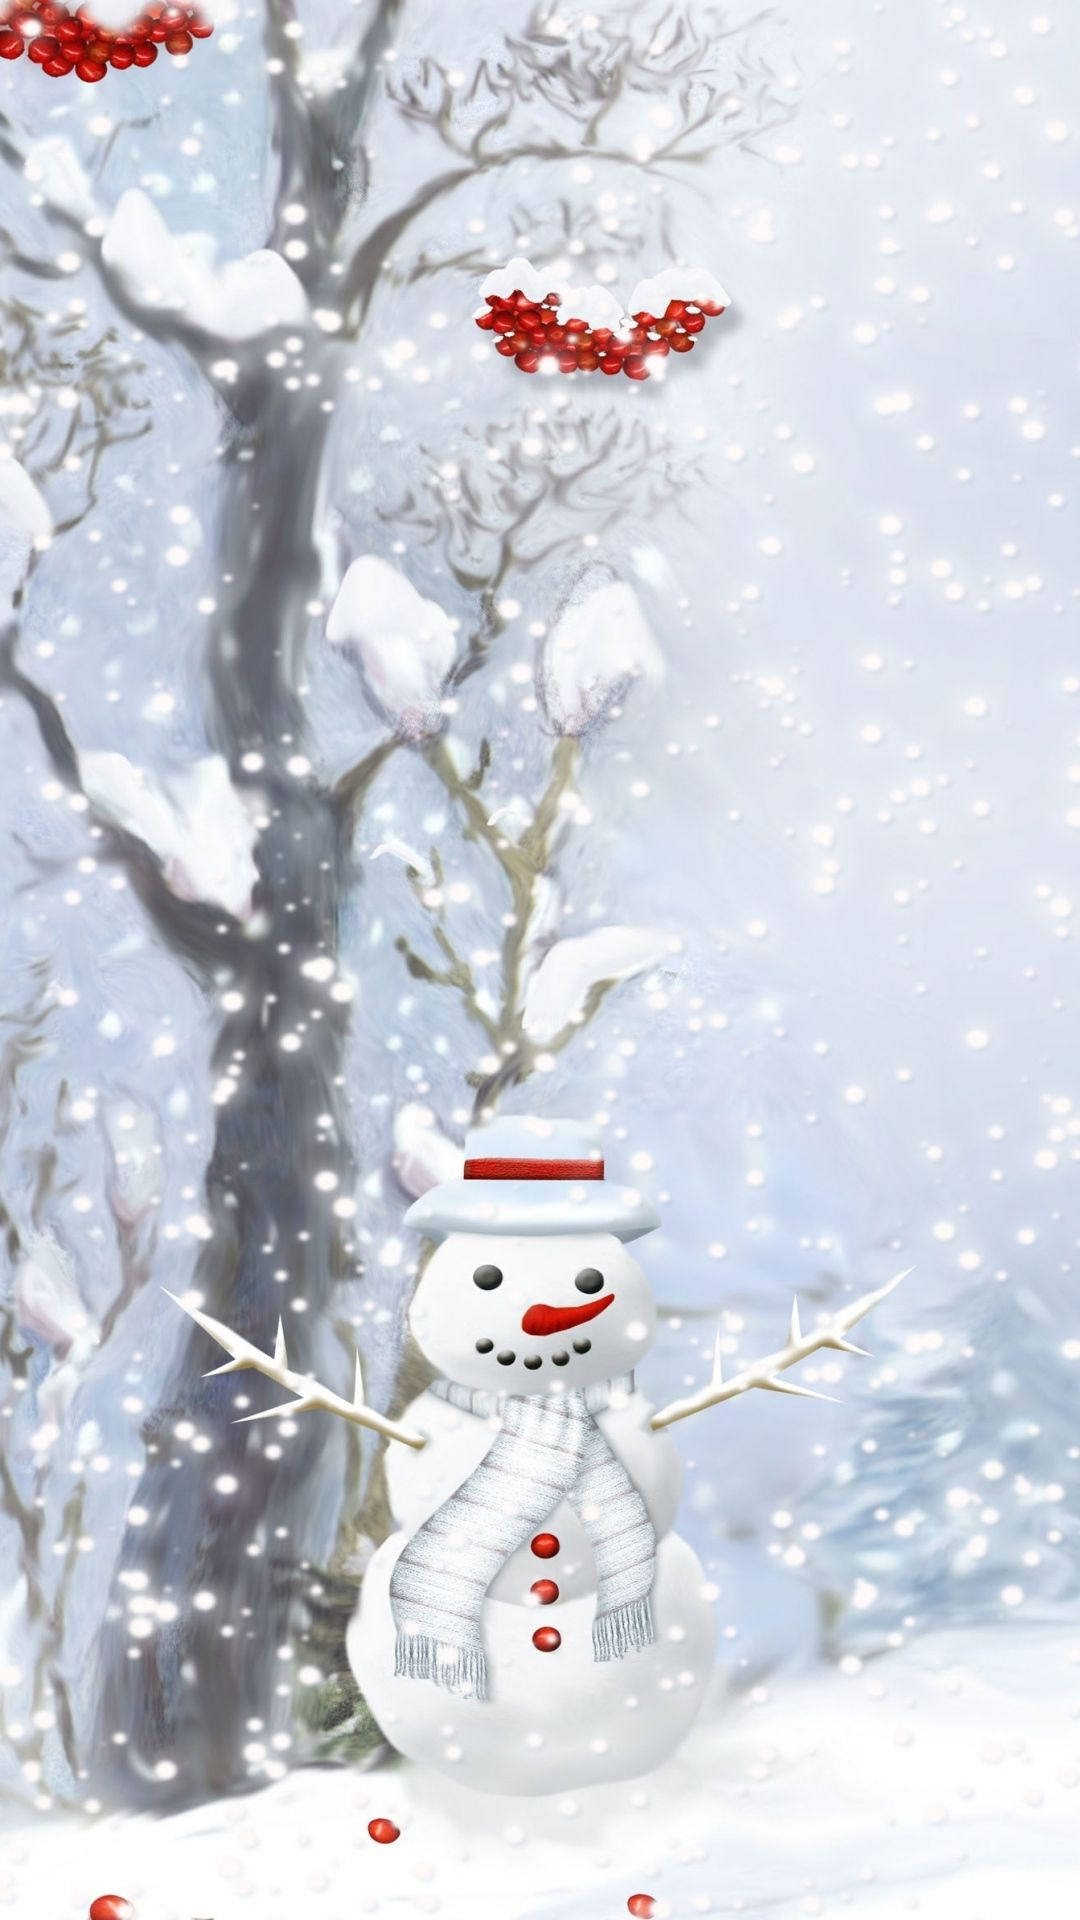 christmas snowman Apple iPhone 5s hd wallpapers available